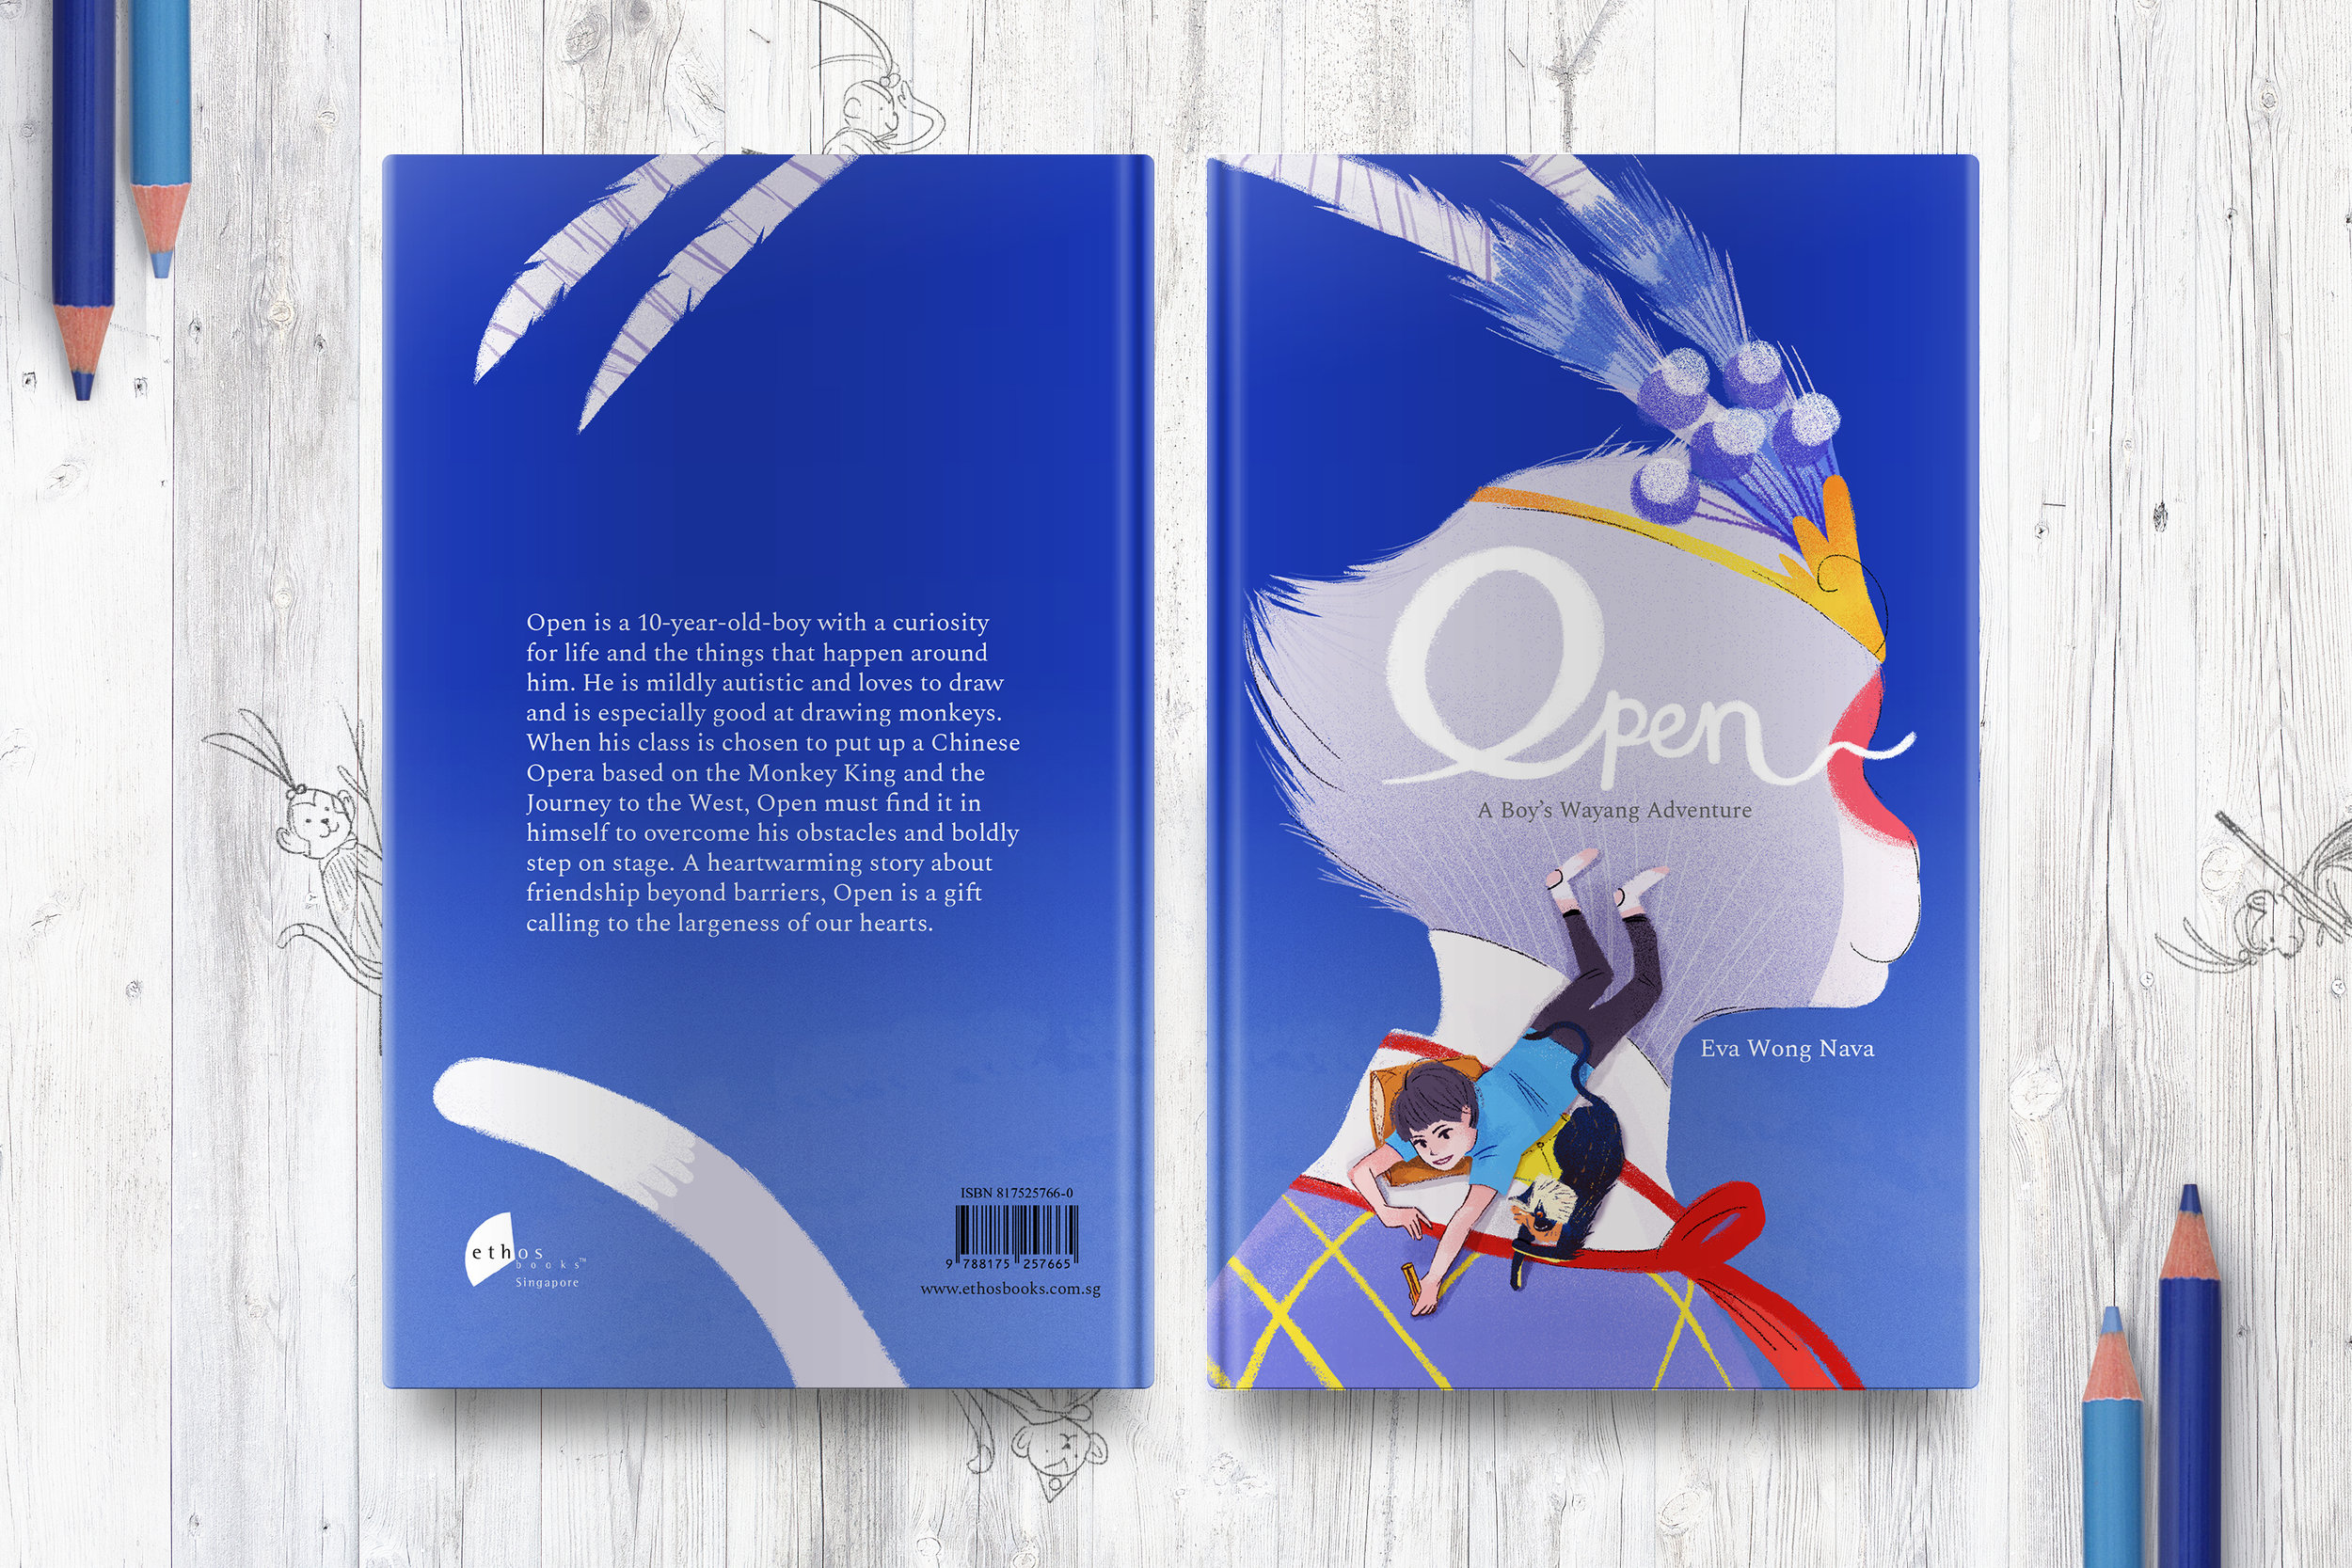 Get the book at the Ethos Books  Webstore   Special thanks to Ethos Books and  Eva Wong Nava  for the opportunity and support.